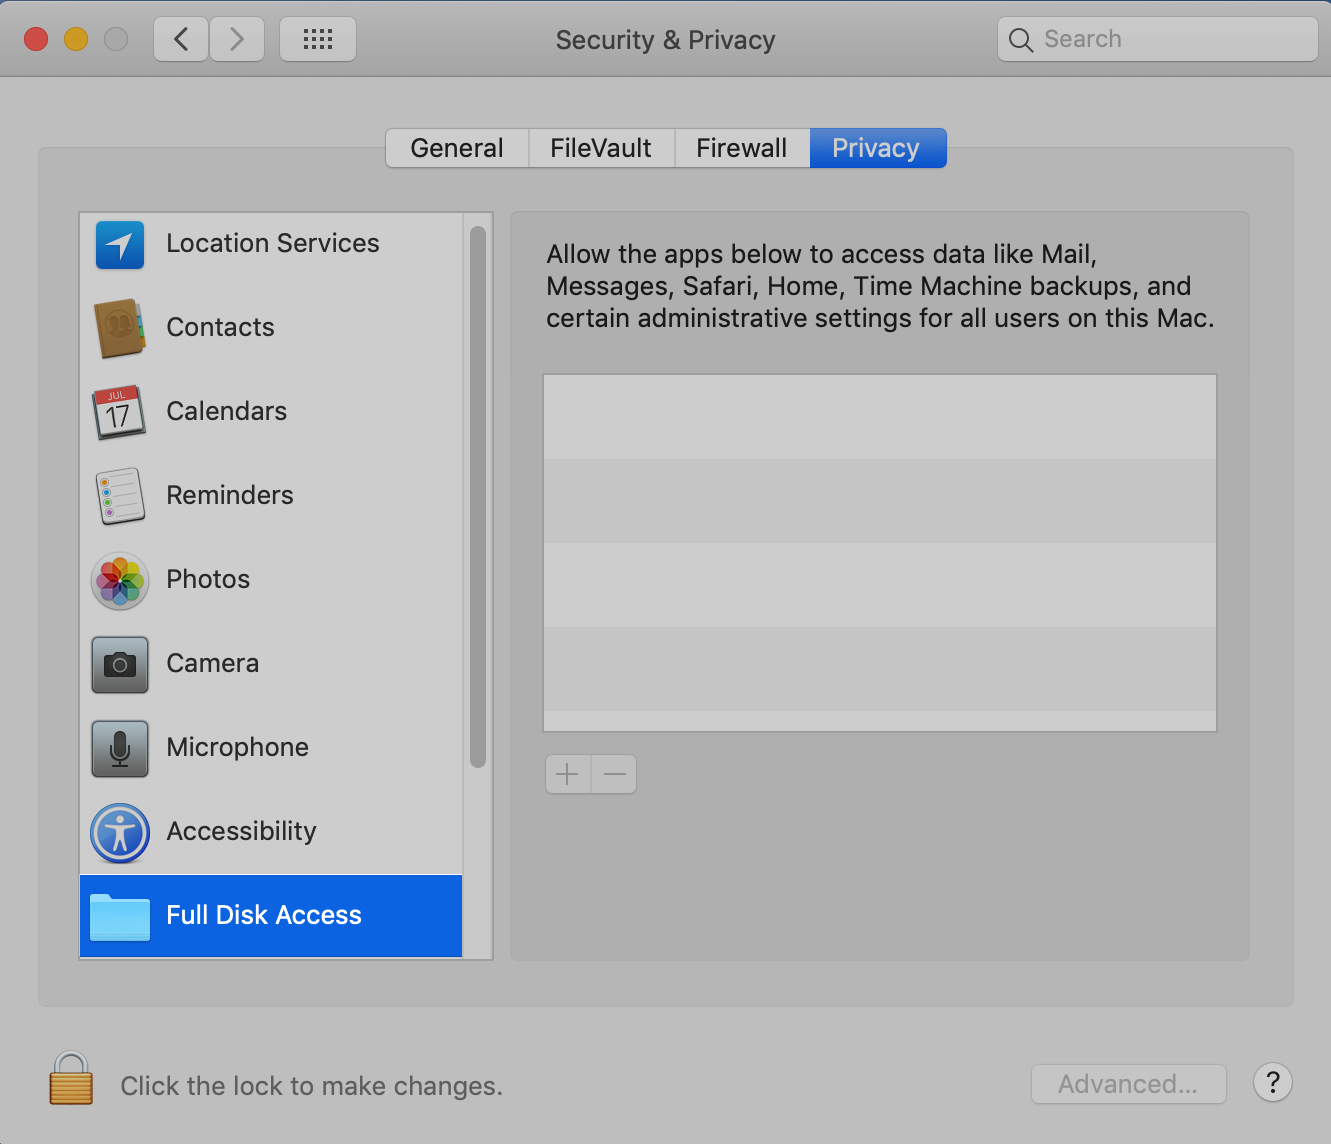 macOS Privacy tab: Select Full Disk Access